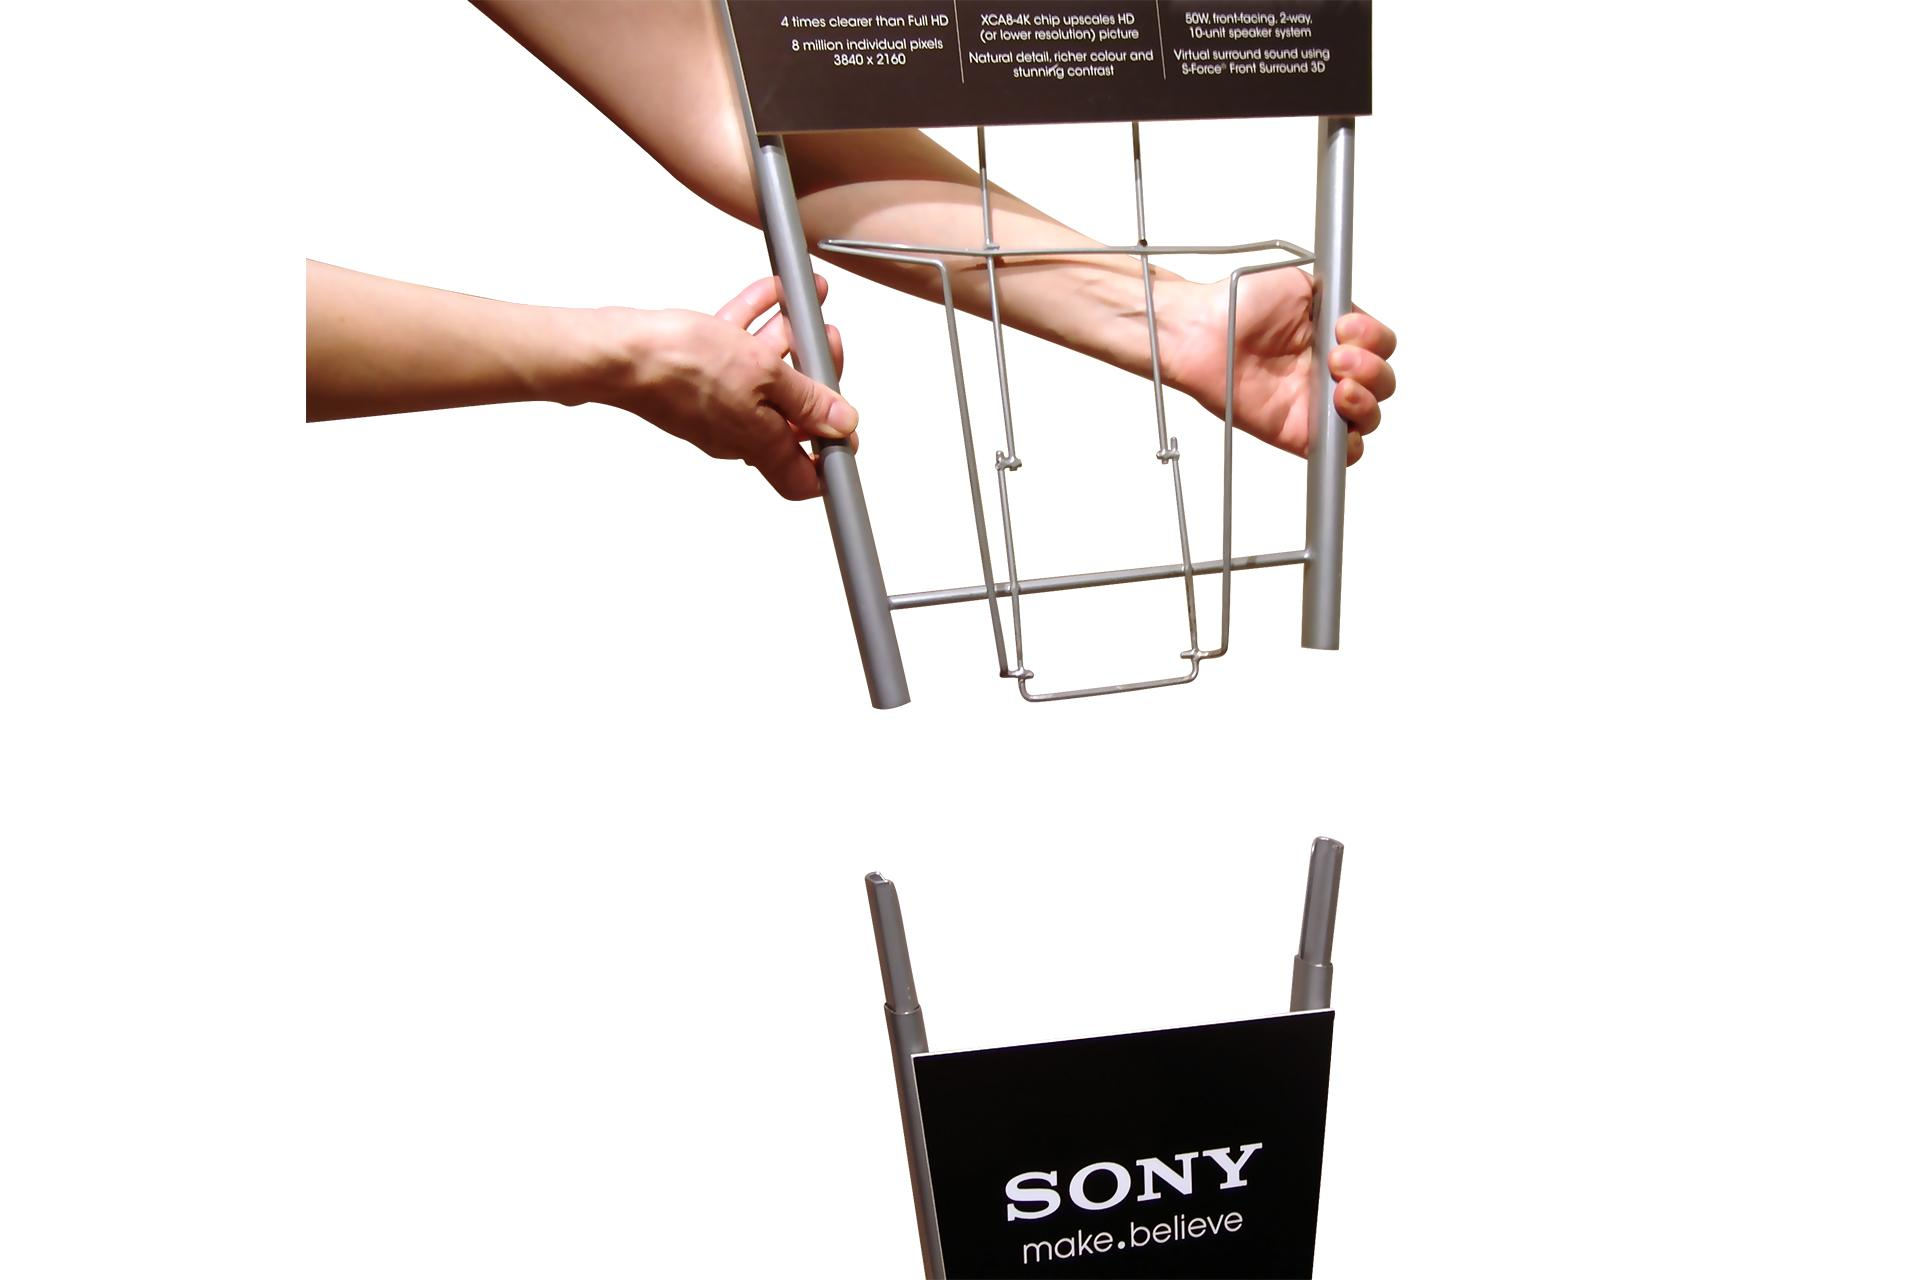 Sony Internal Promotion